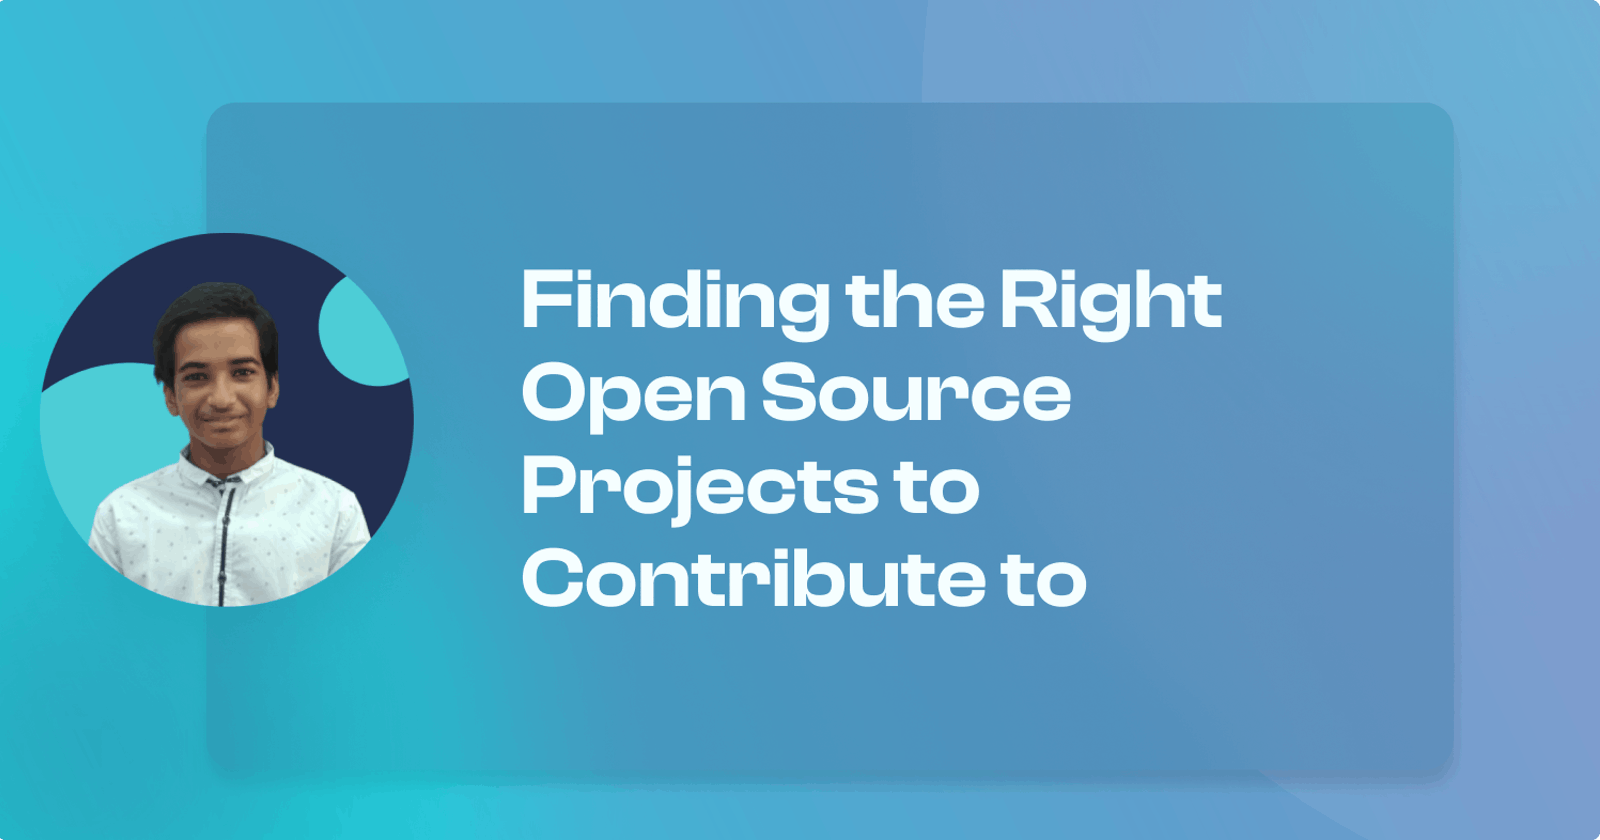 Finding the Right Open Source Projects to Contribute to